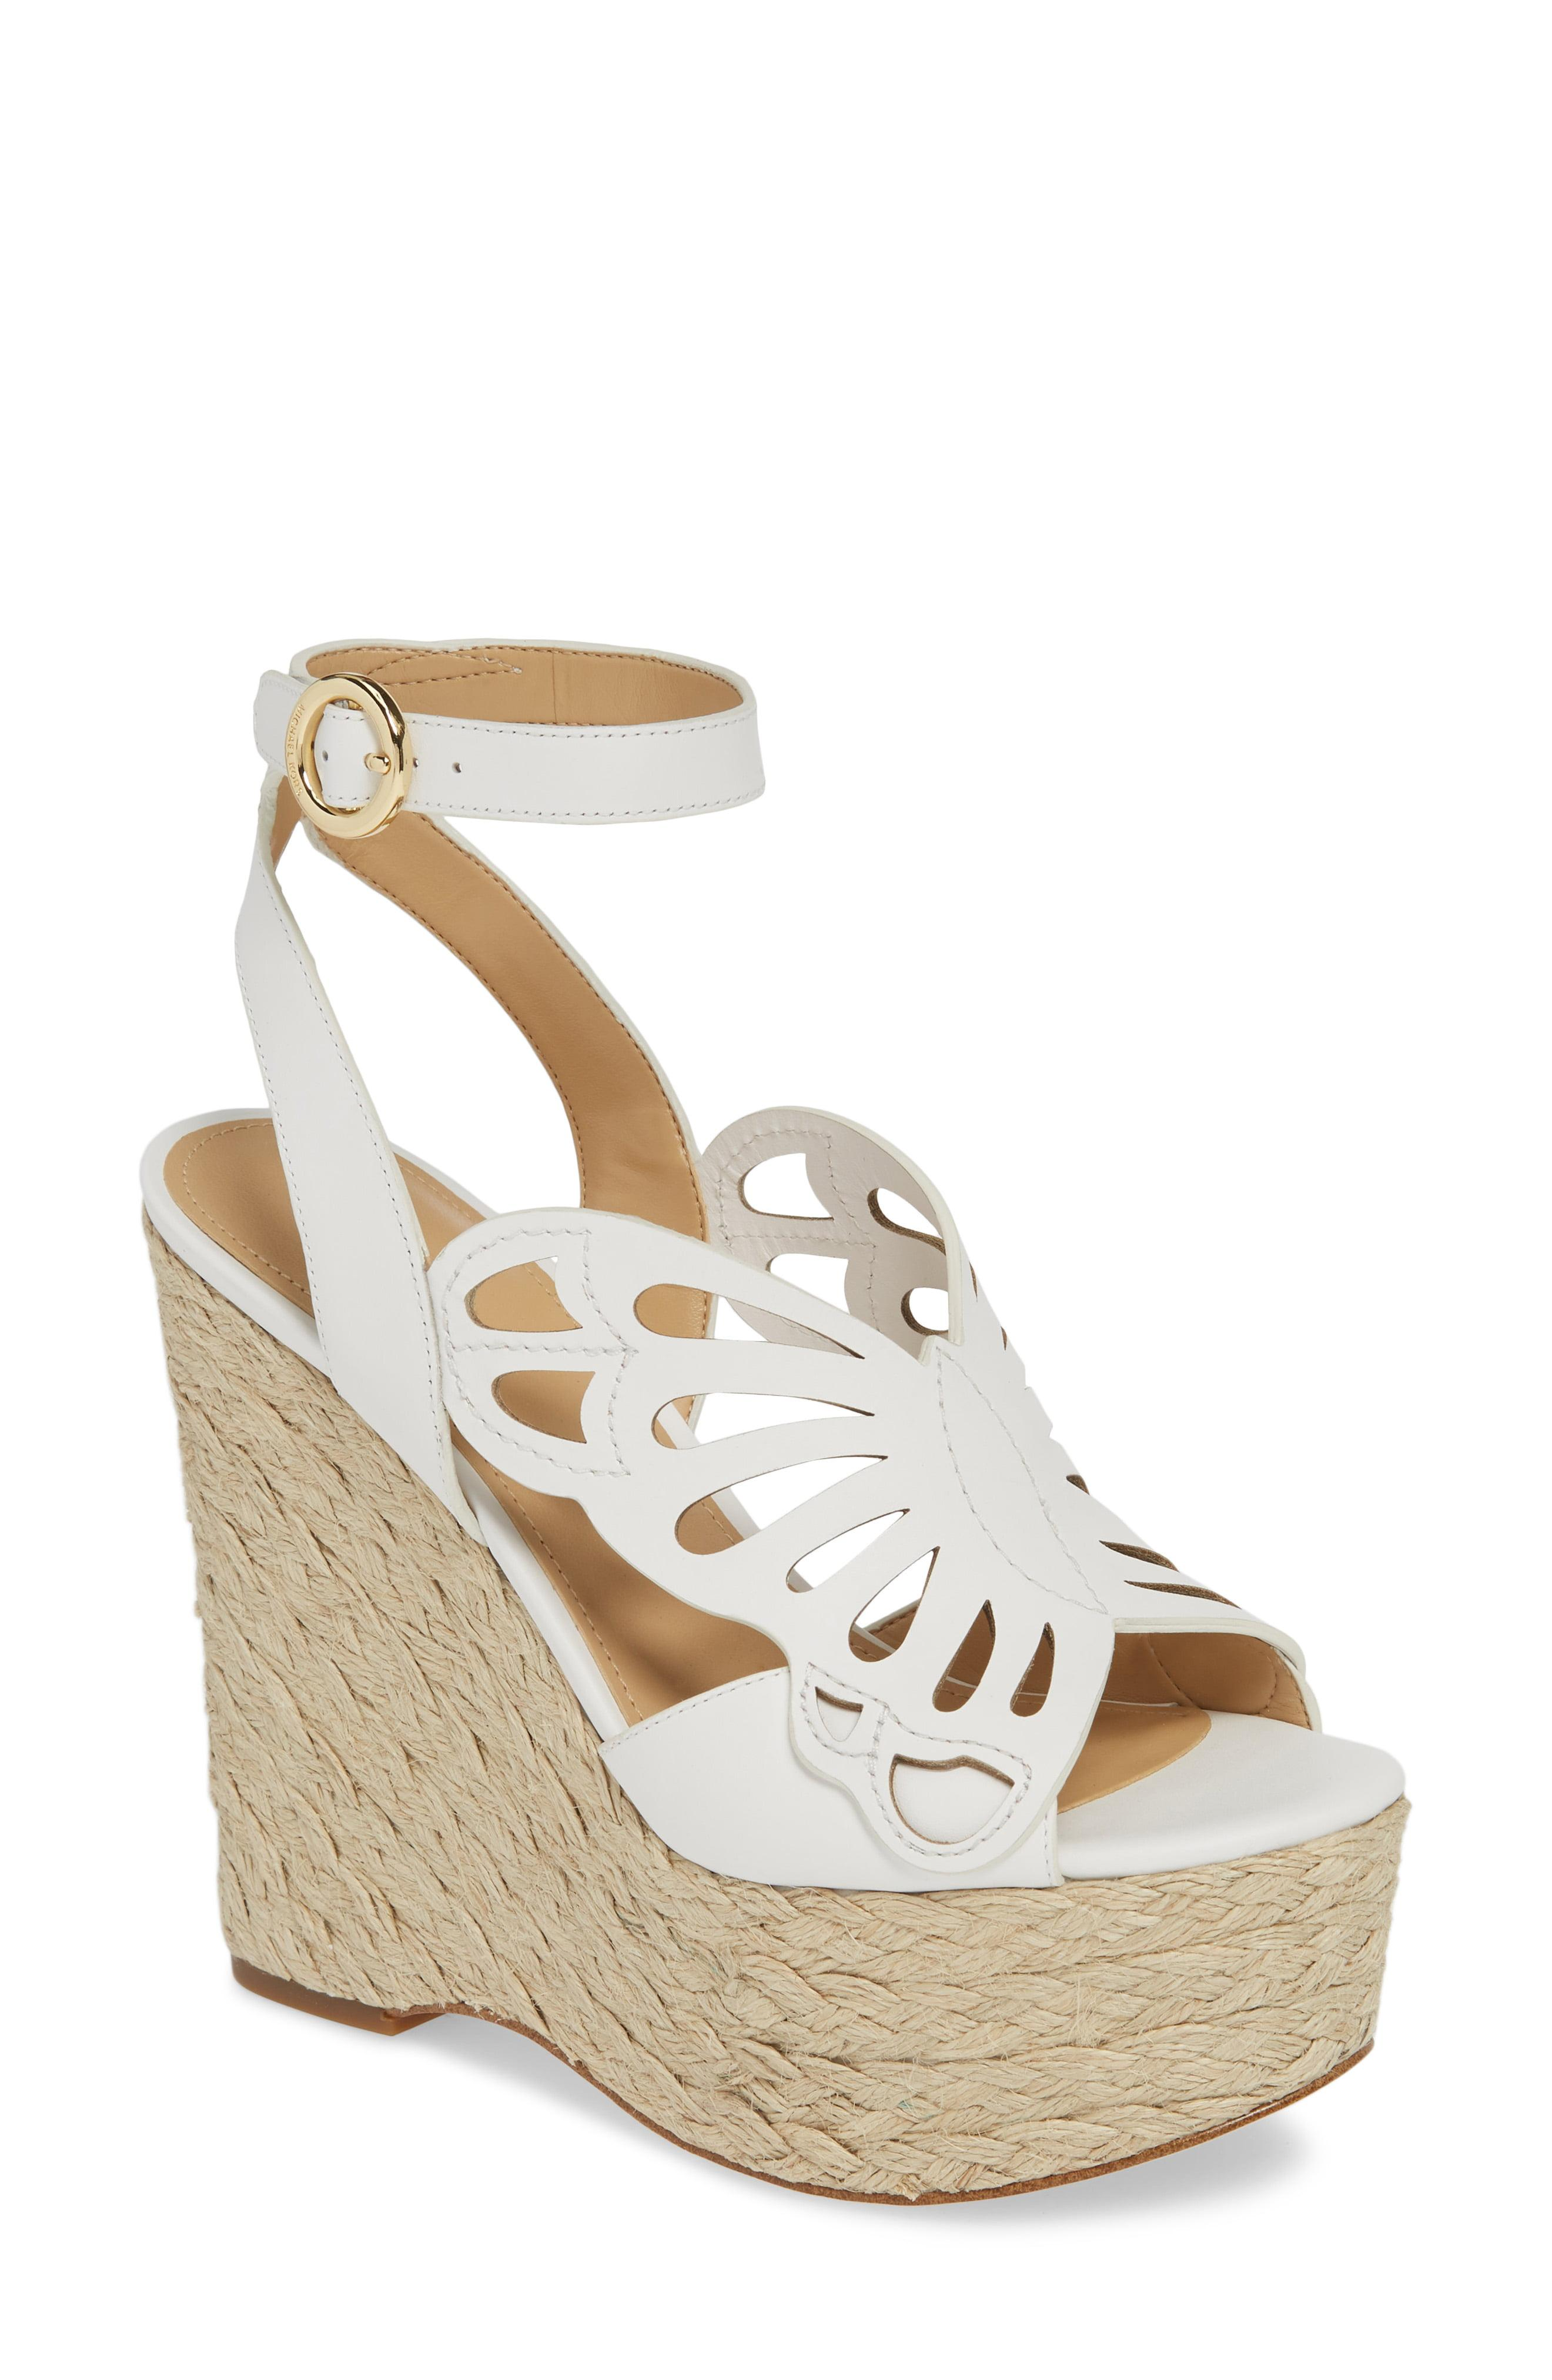 4ea7ae62dce Lyst - MICHAEL Michael Kors Felicity Leather Butterfly Wedge in White